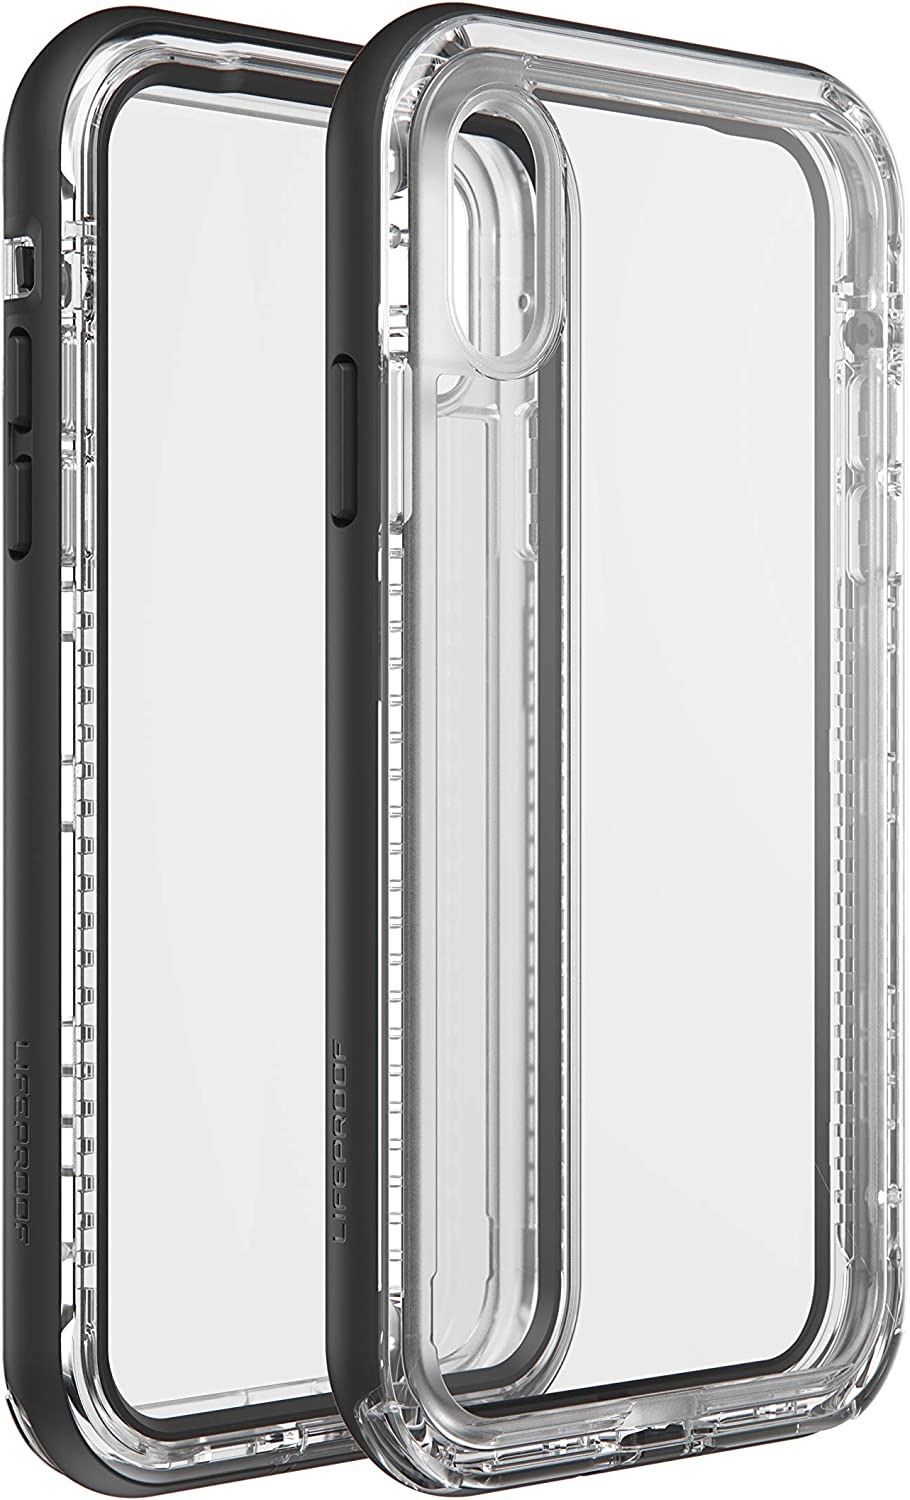 LifeProof (77-60550 Next Series, Amplify The Action. Clear and Slim dropproof, dustproof, and Snowproof case for iPhone X/Xs - Black Crystal